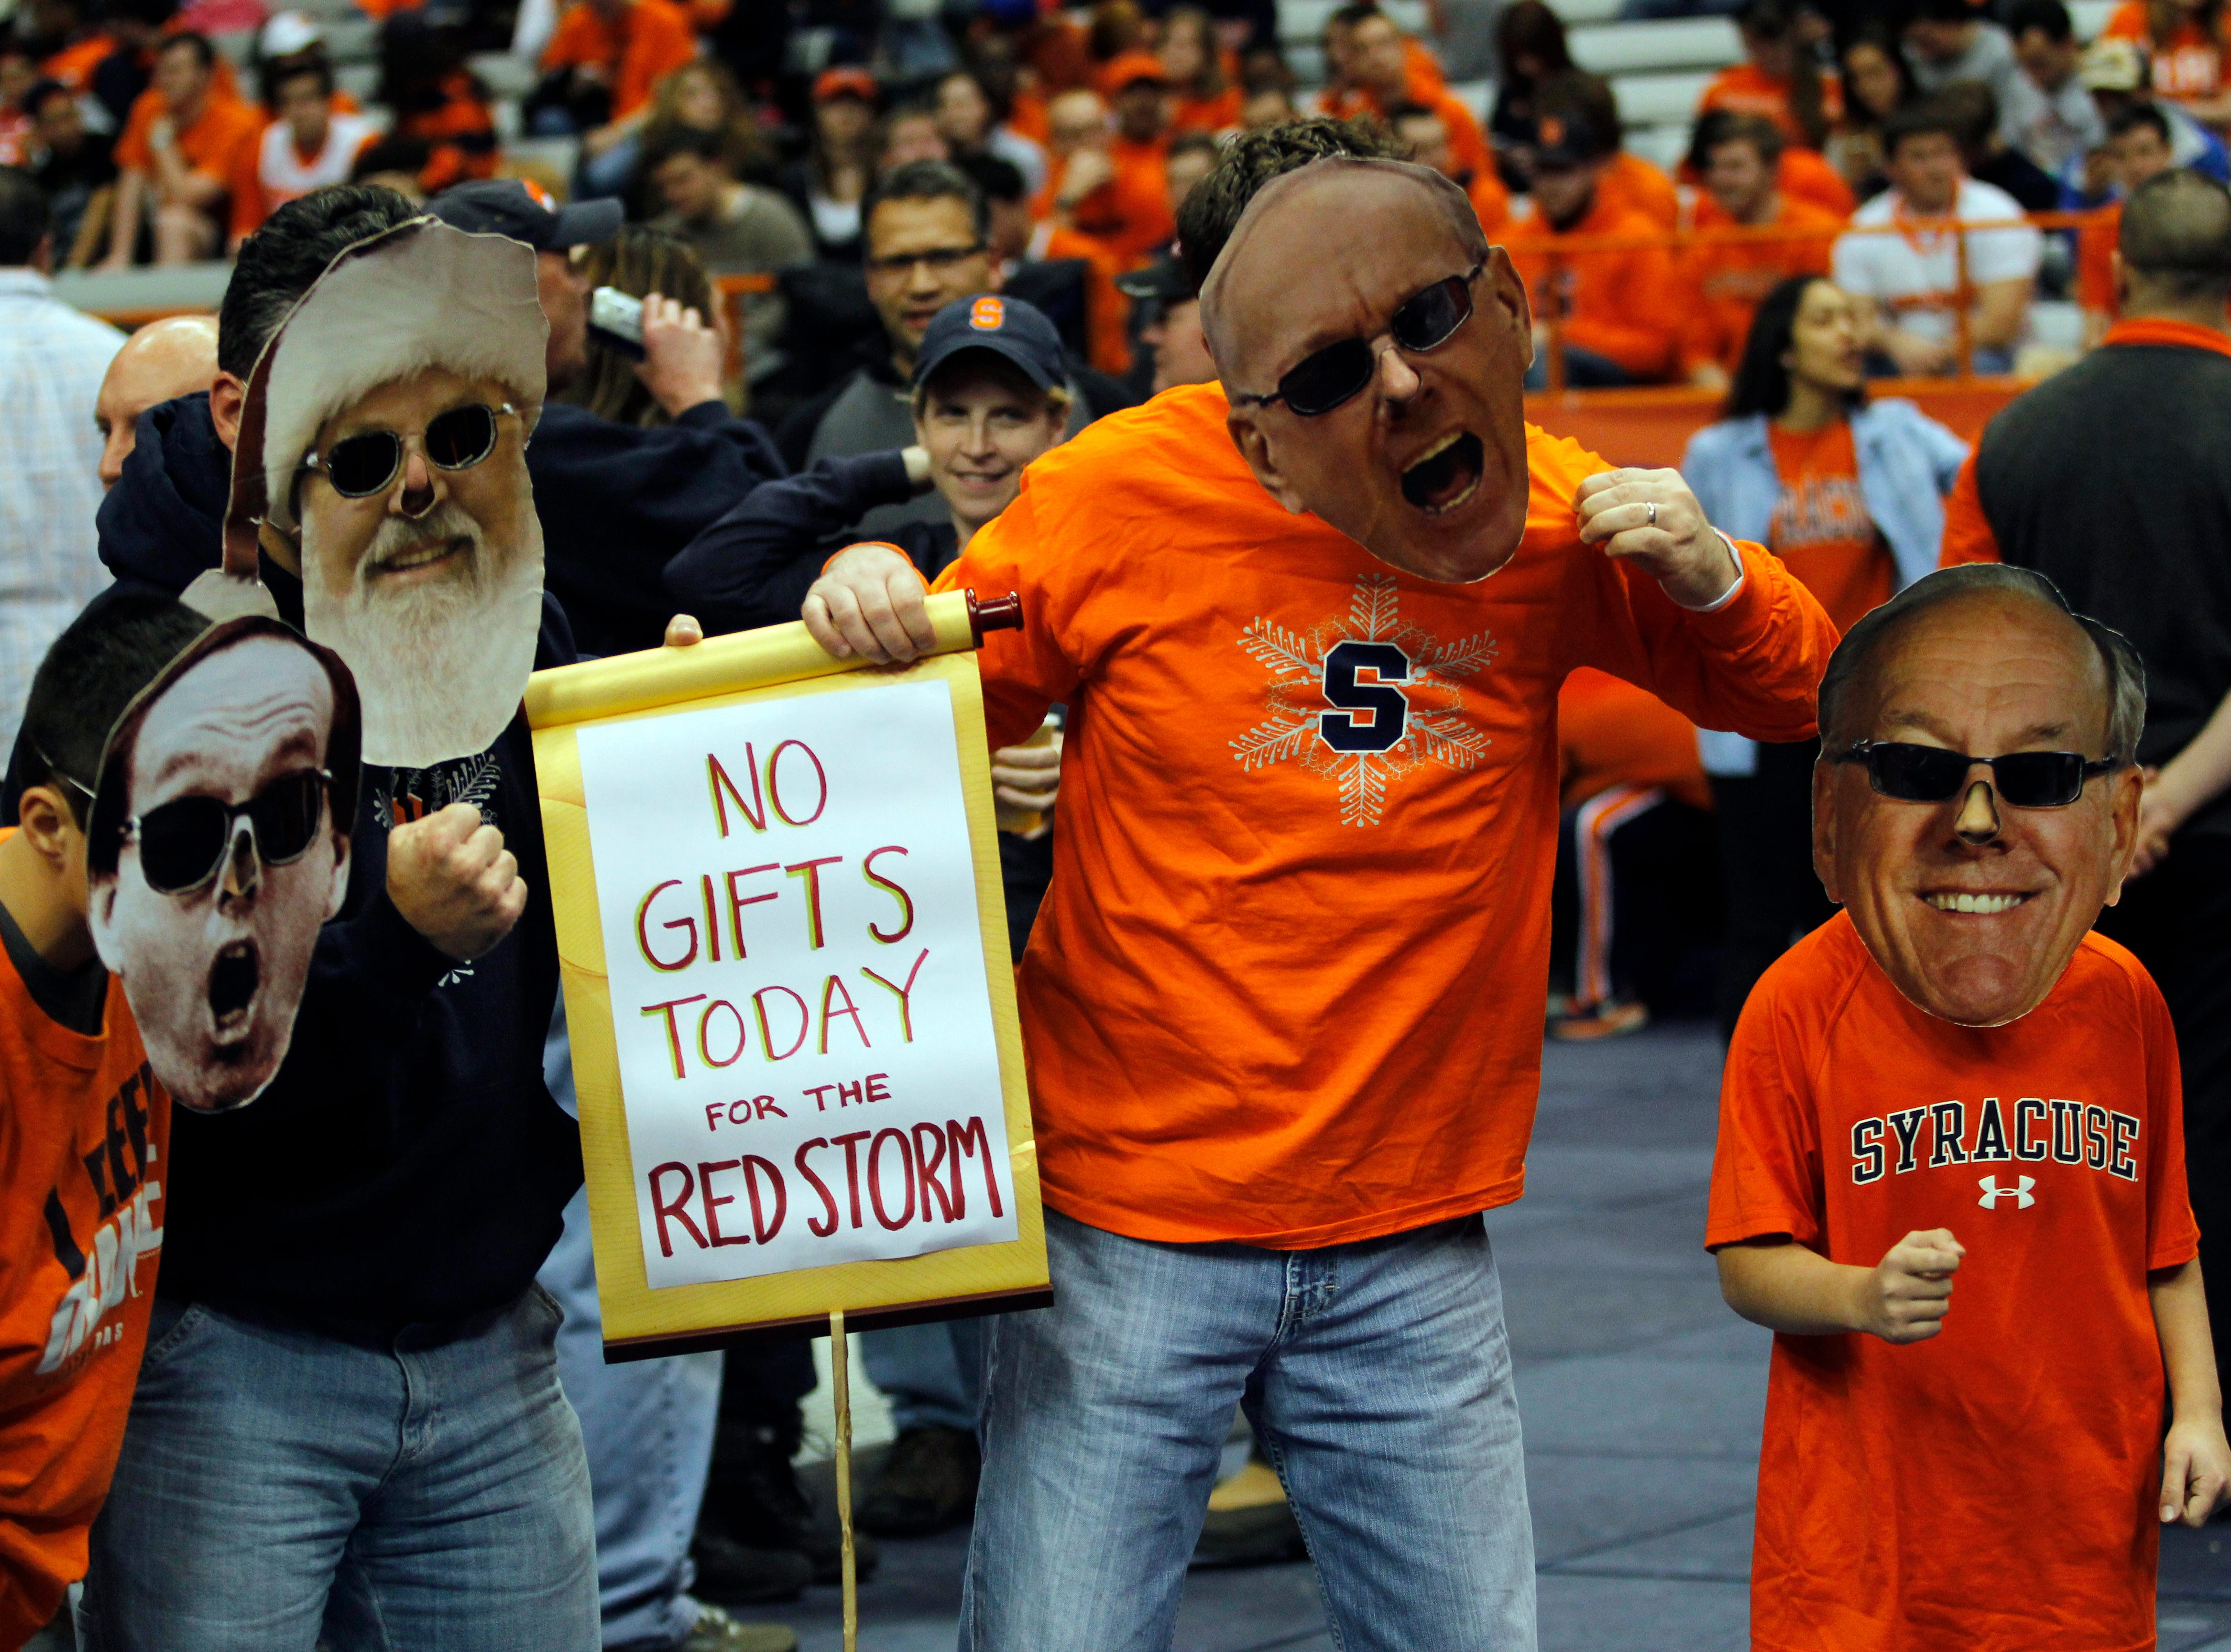 2014: Syracuse fans wearing masks of Syracuse head coach Jim Boeheim and Santa cheer at an NCAA college basketball game against St. John's in Syracuse, N.Y., Saturday, Dec. 6, 2014. (AP Photo/Nick Lisi)